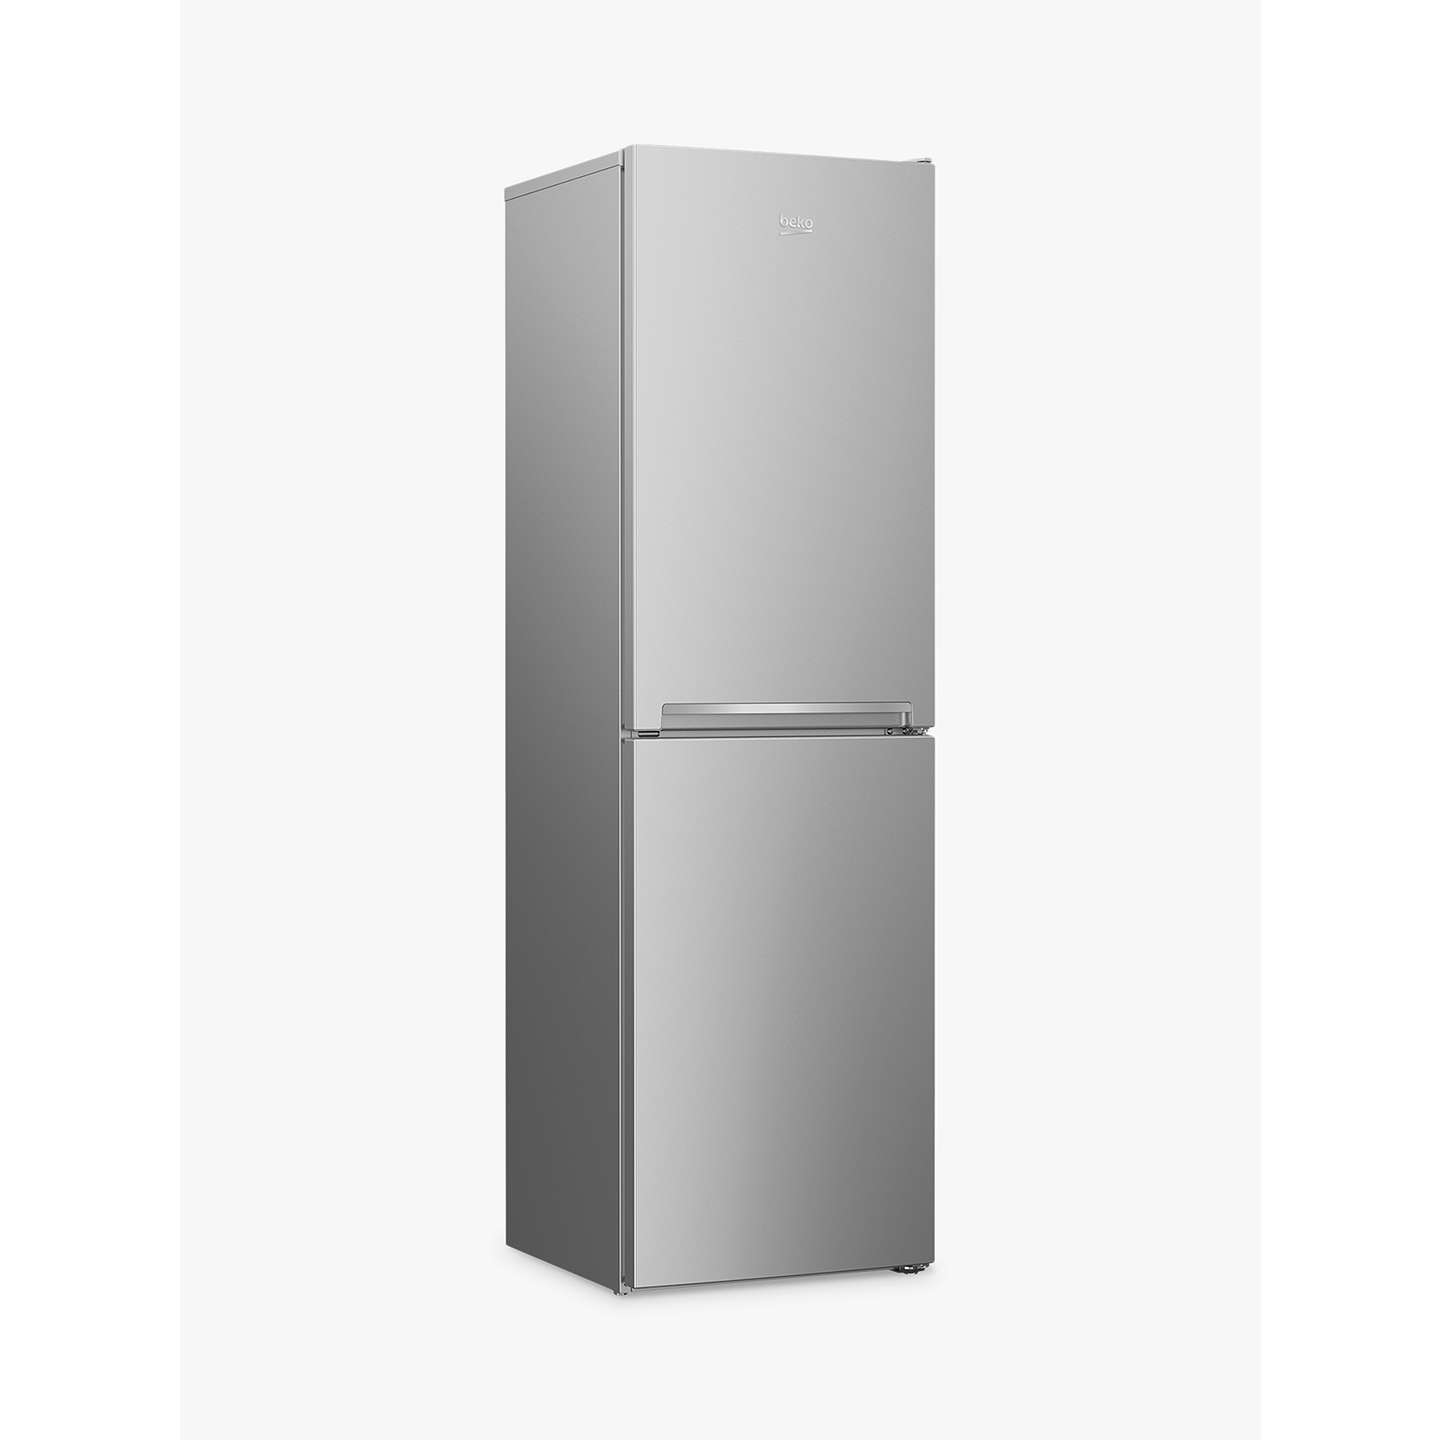 beko cfg1582s freestanding fridge freezer a energy rating 54cm rh johnlewis com Zer Ands Portal Zer Name